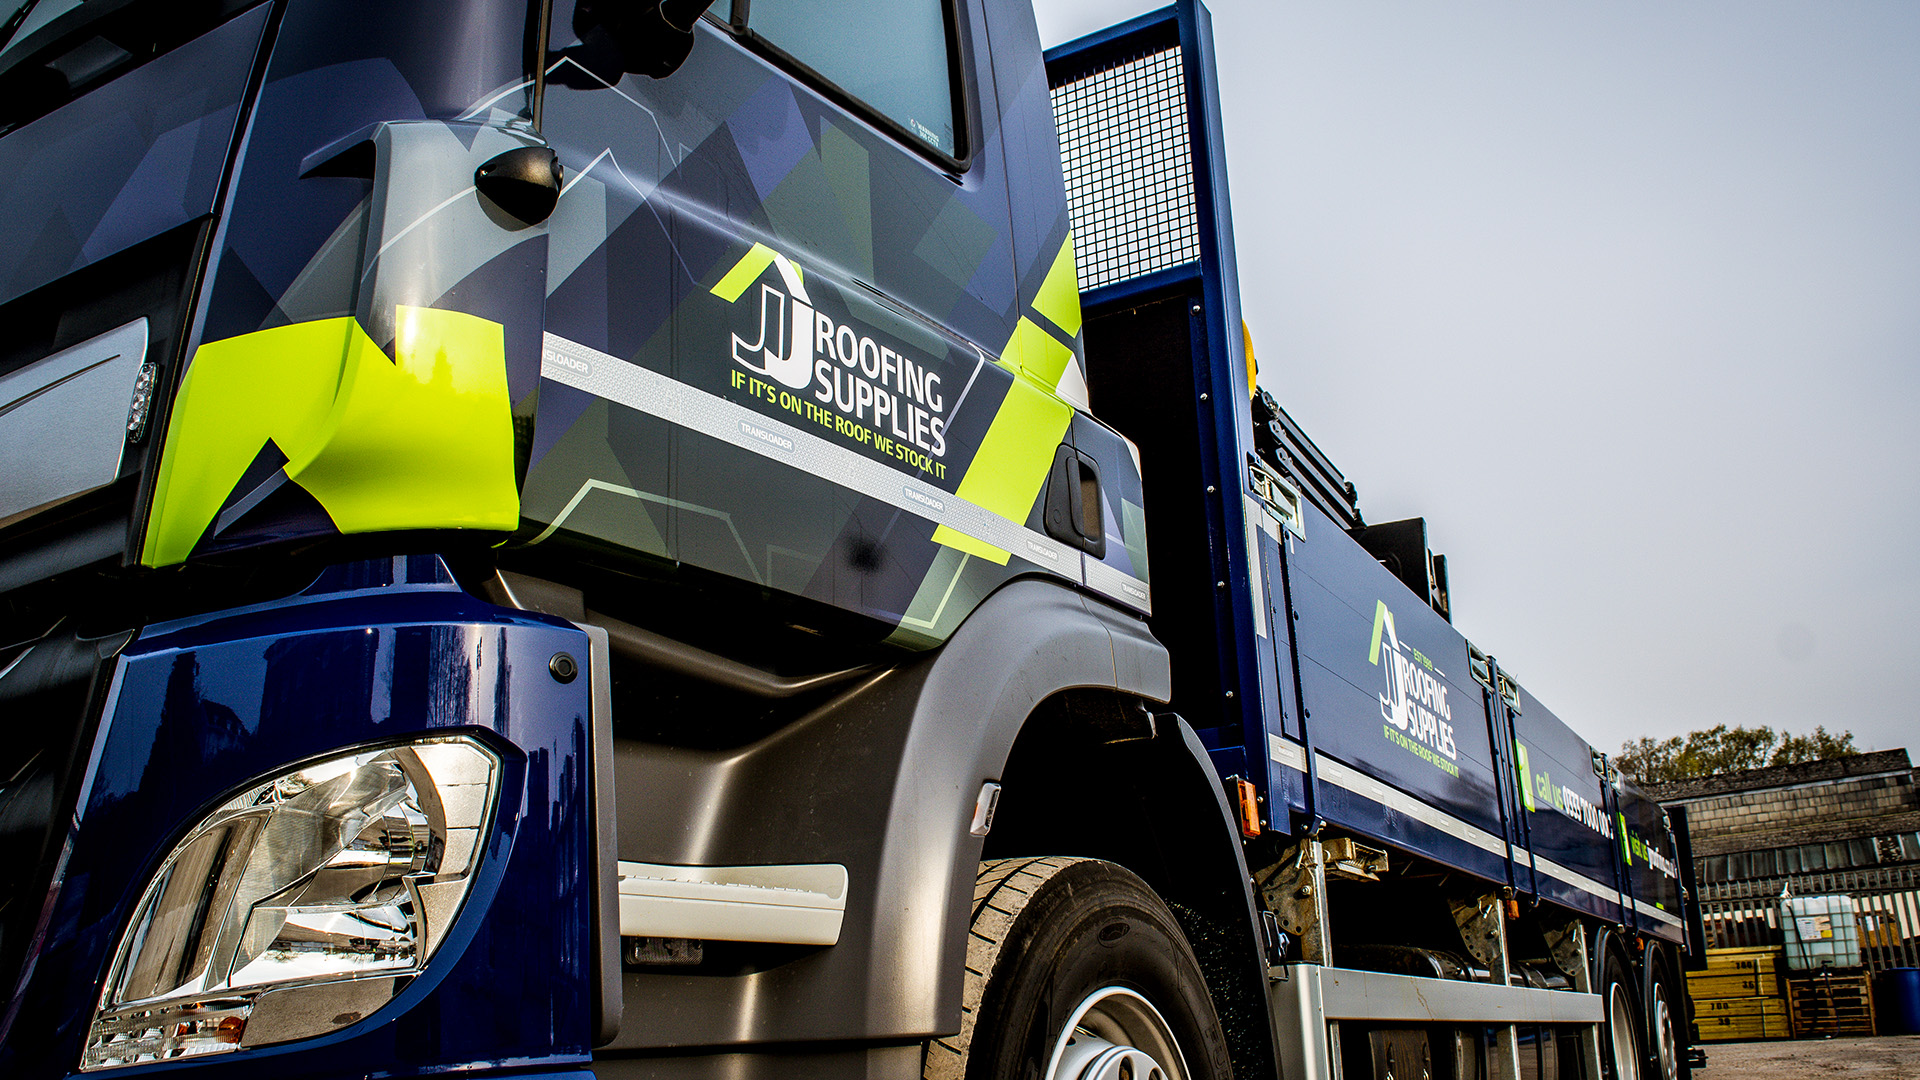 DAF CF 320 JJ Roofing Supplies New Lorry Main Blog Image